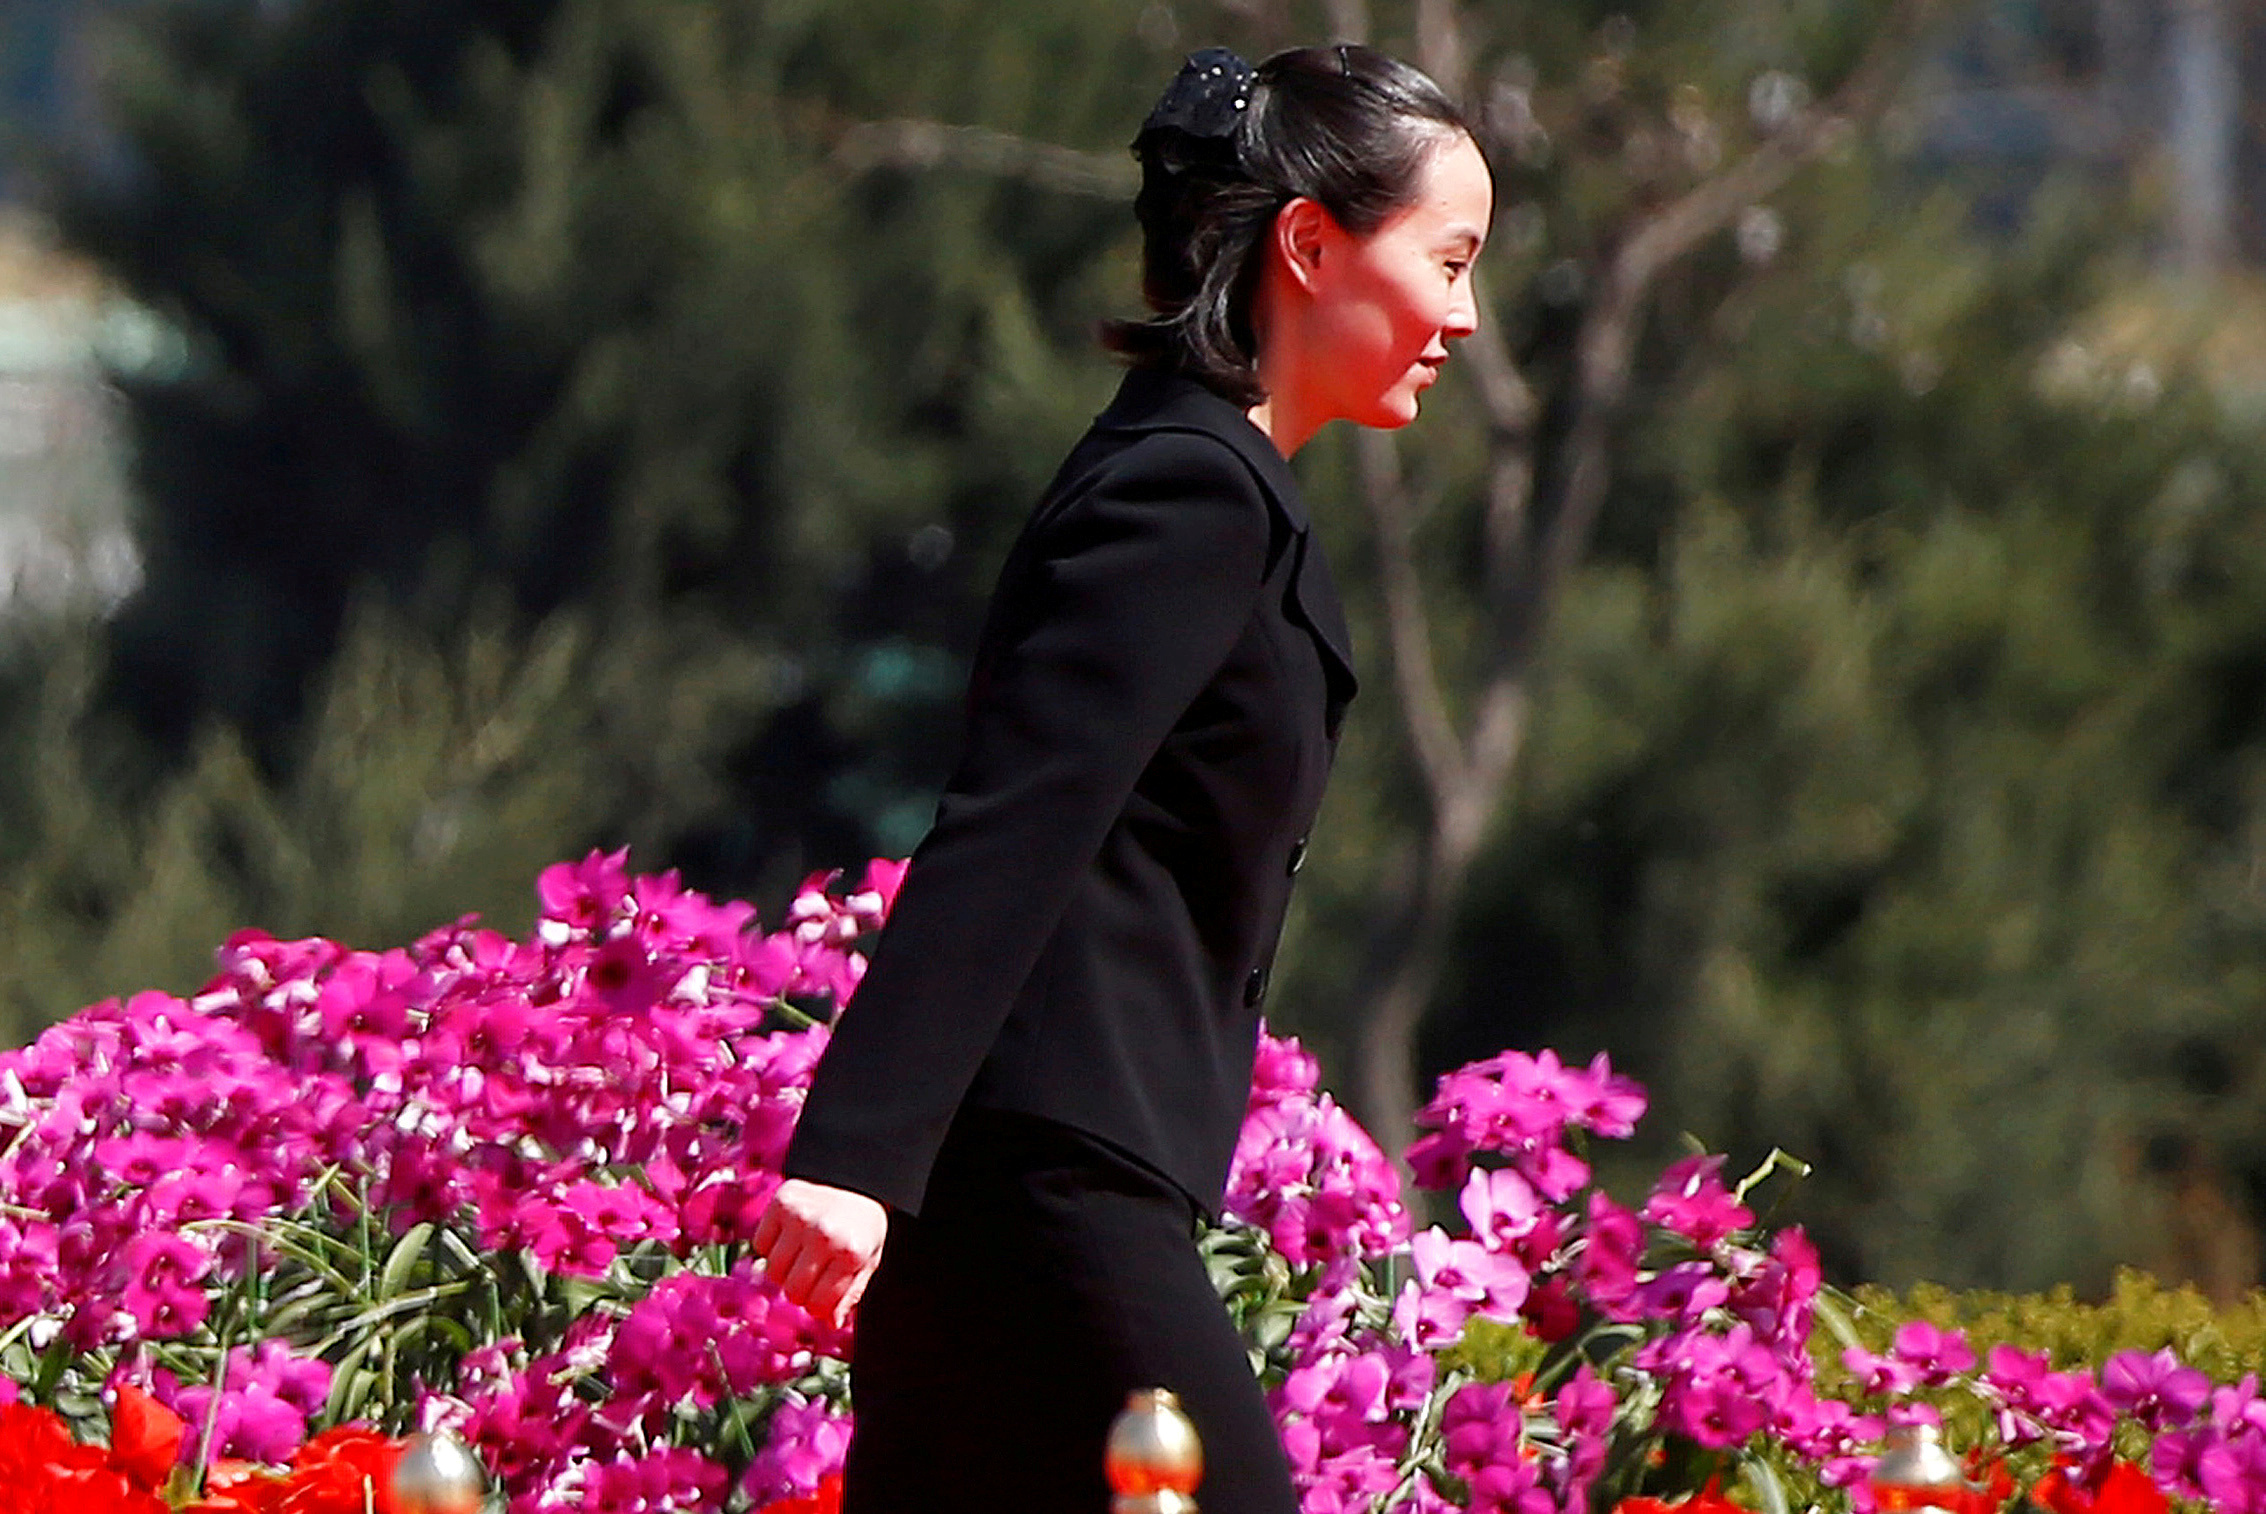 Kim Yo Jong, sister of North Korean leader Kim Jong Un, in Pyongyang, North Korea April 13, 2017.